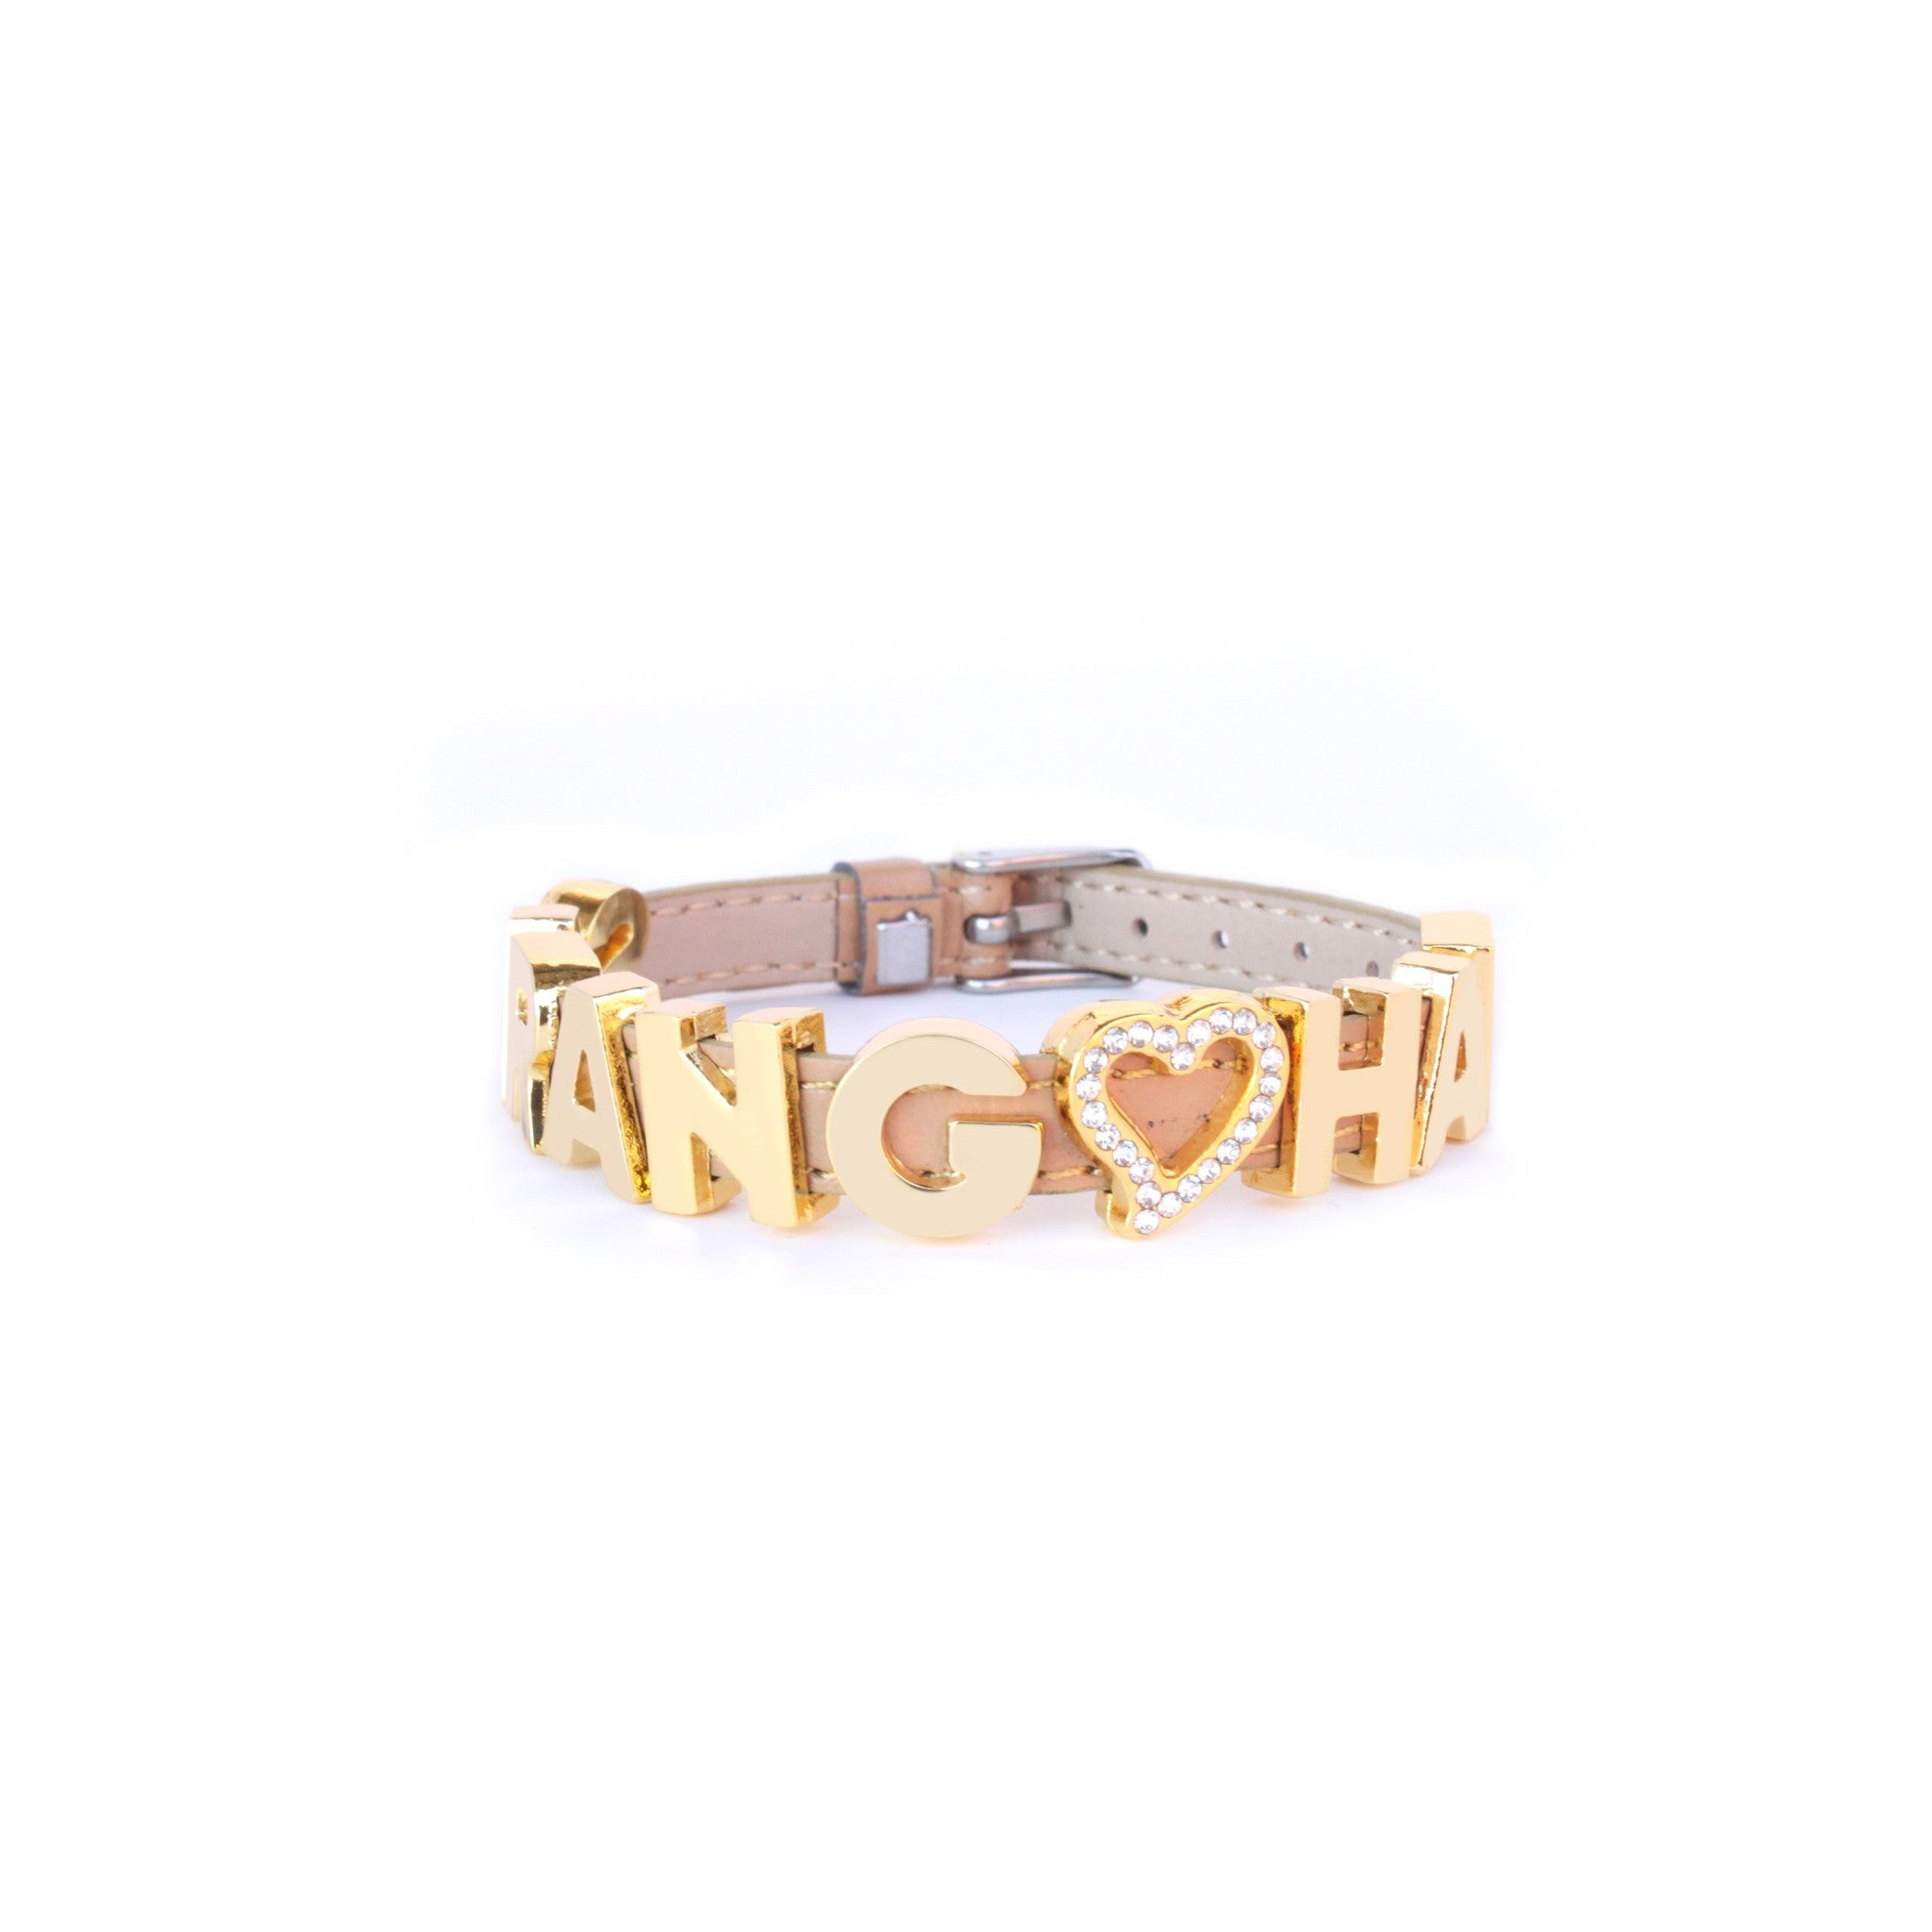 Slider Faux Leather Bracelet in Gold Letters (Love Across the World)